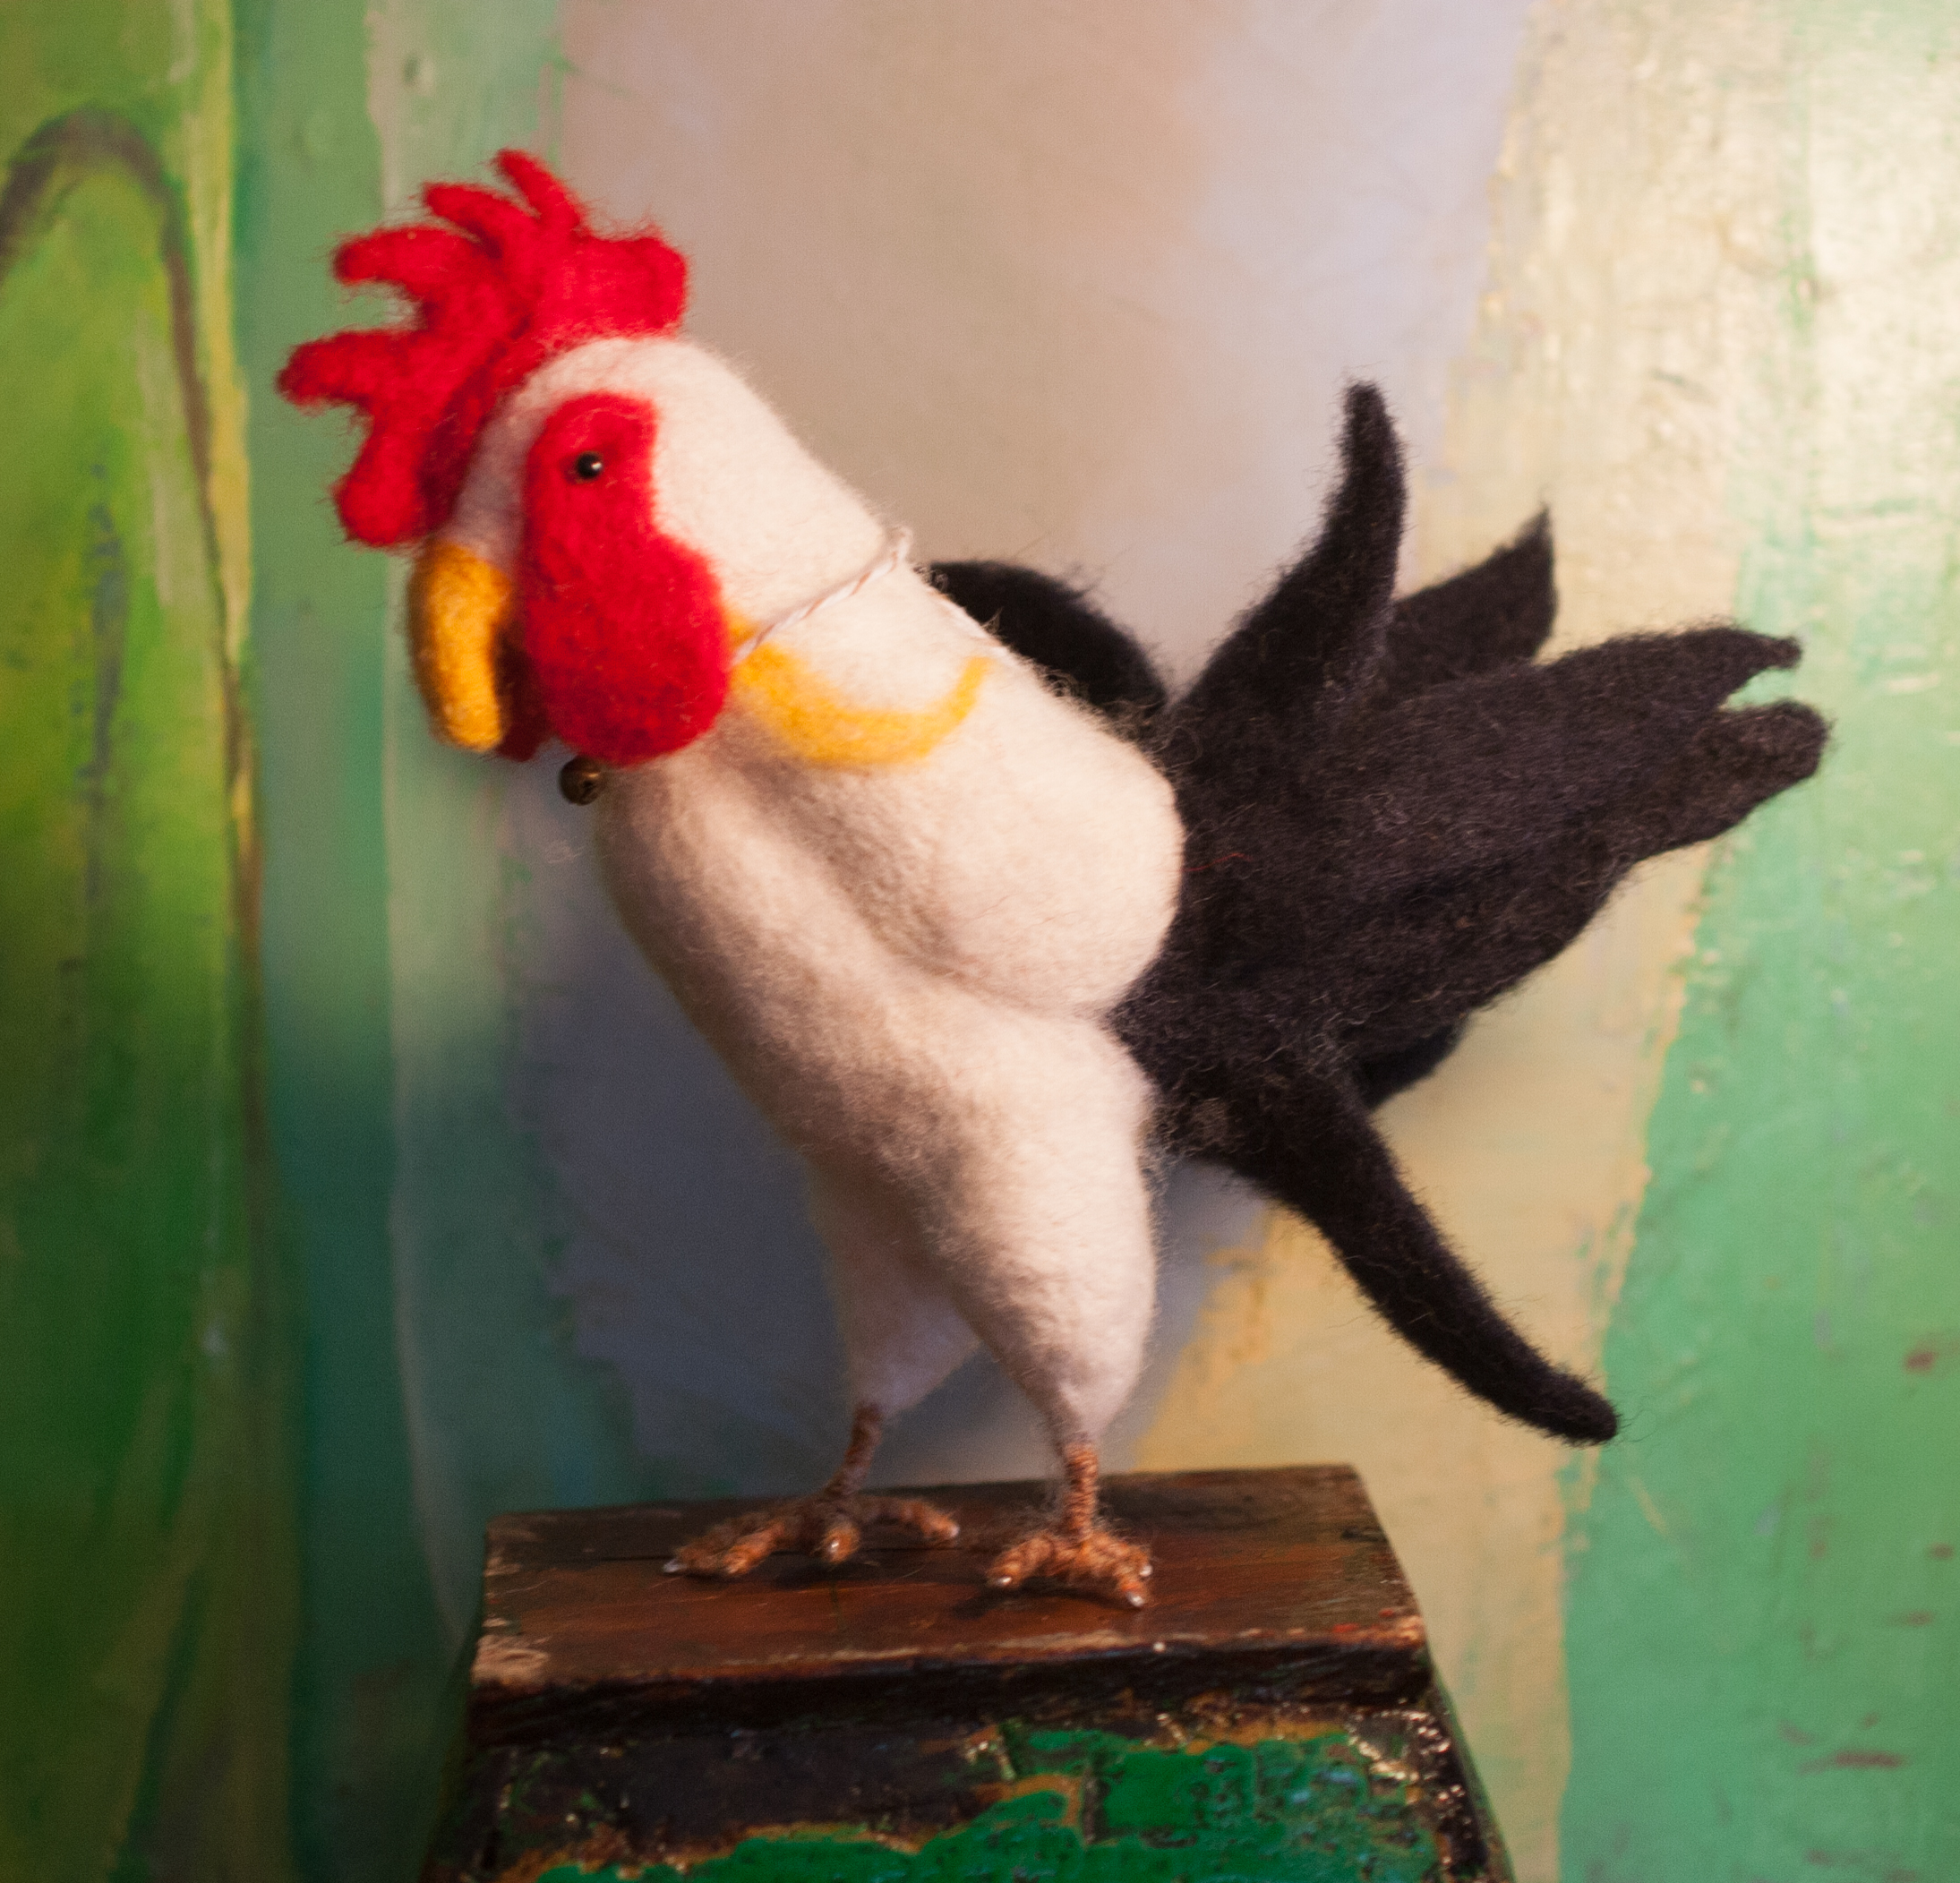 Danielle's acorns reminded me of the work of my lifelong friend, Lisa Ghriskey. Lisa is an amazing multimedia artist. If you are interested in seeing more of her beautiful felt animals you can contact me.